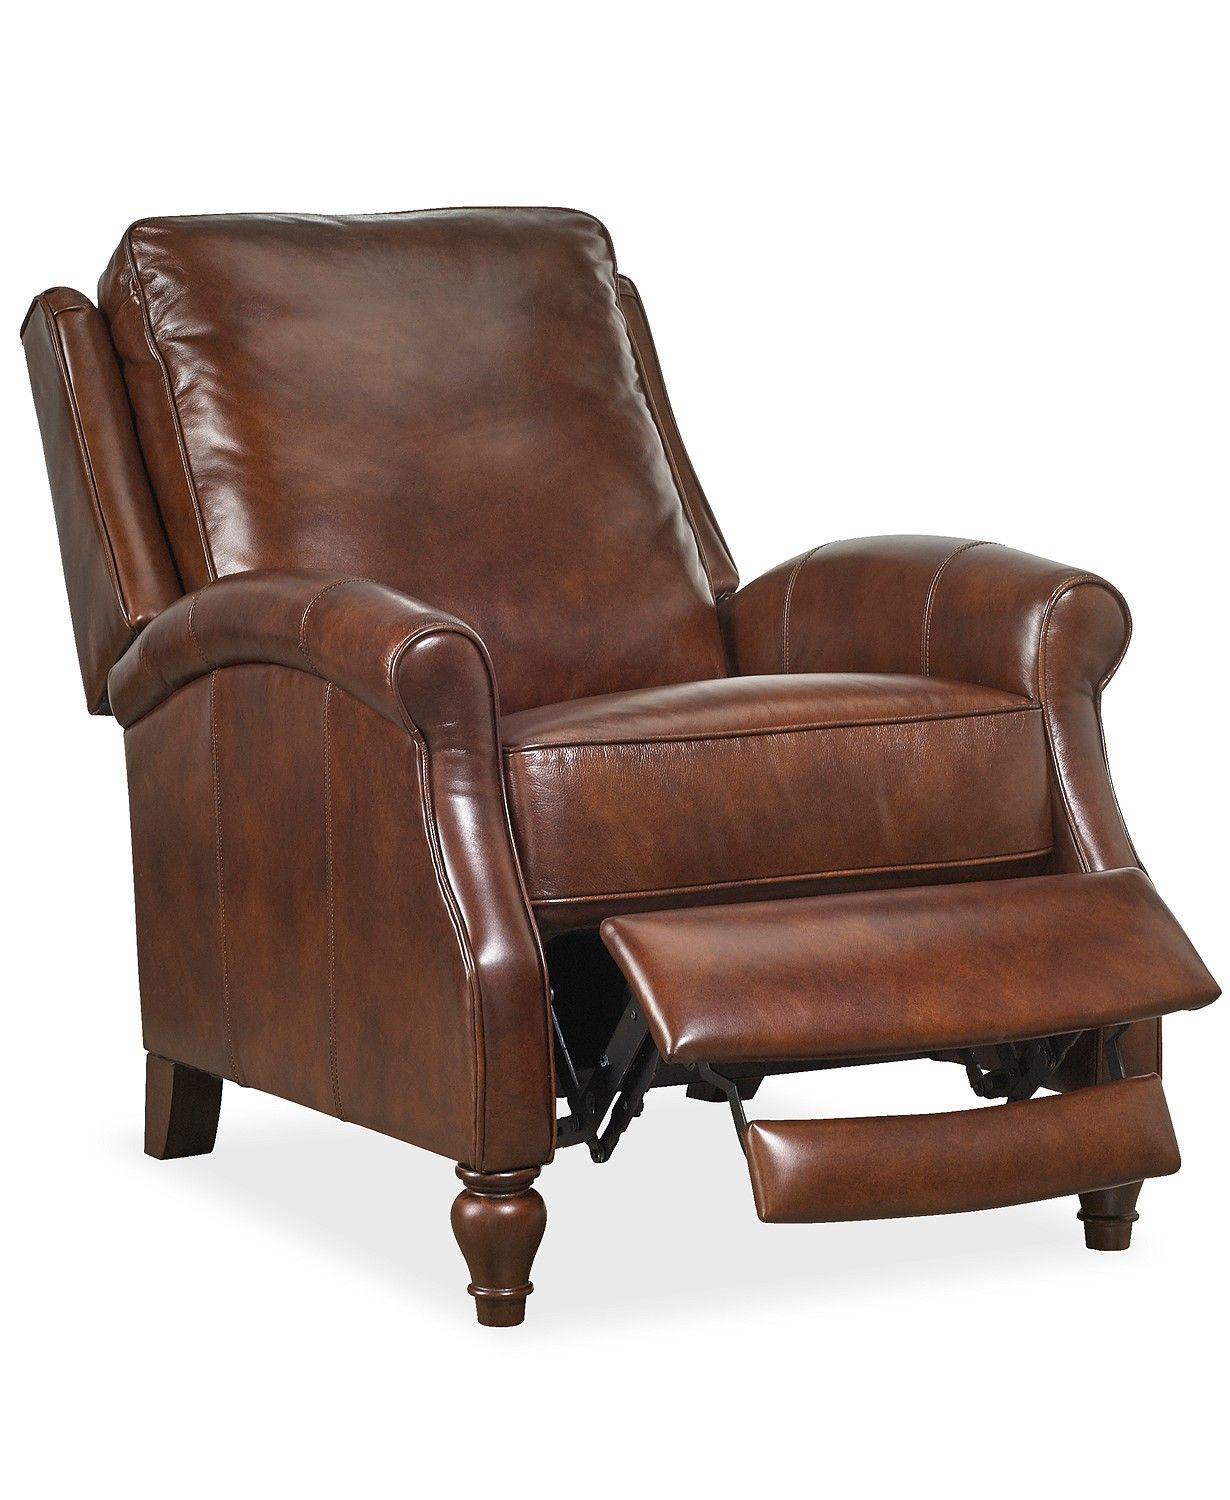 Furniture Leeah Leather Pushback Recliner & Reviews